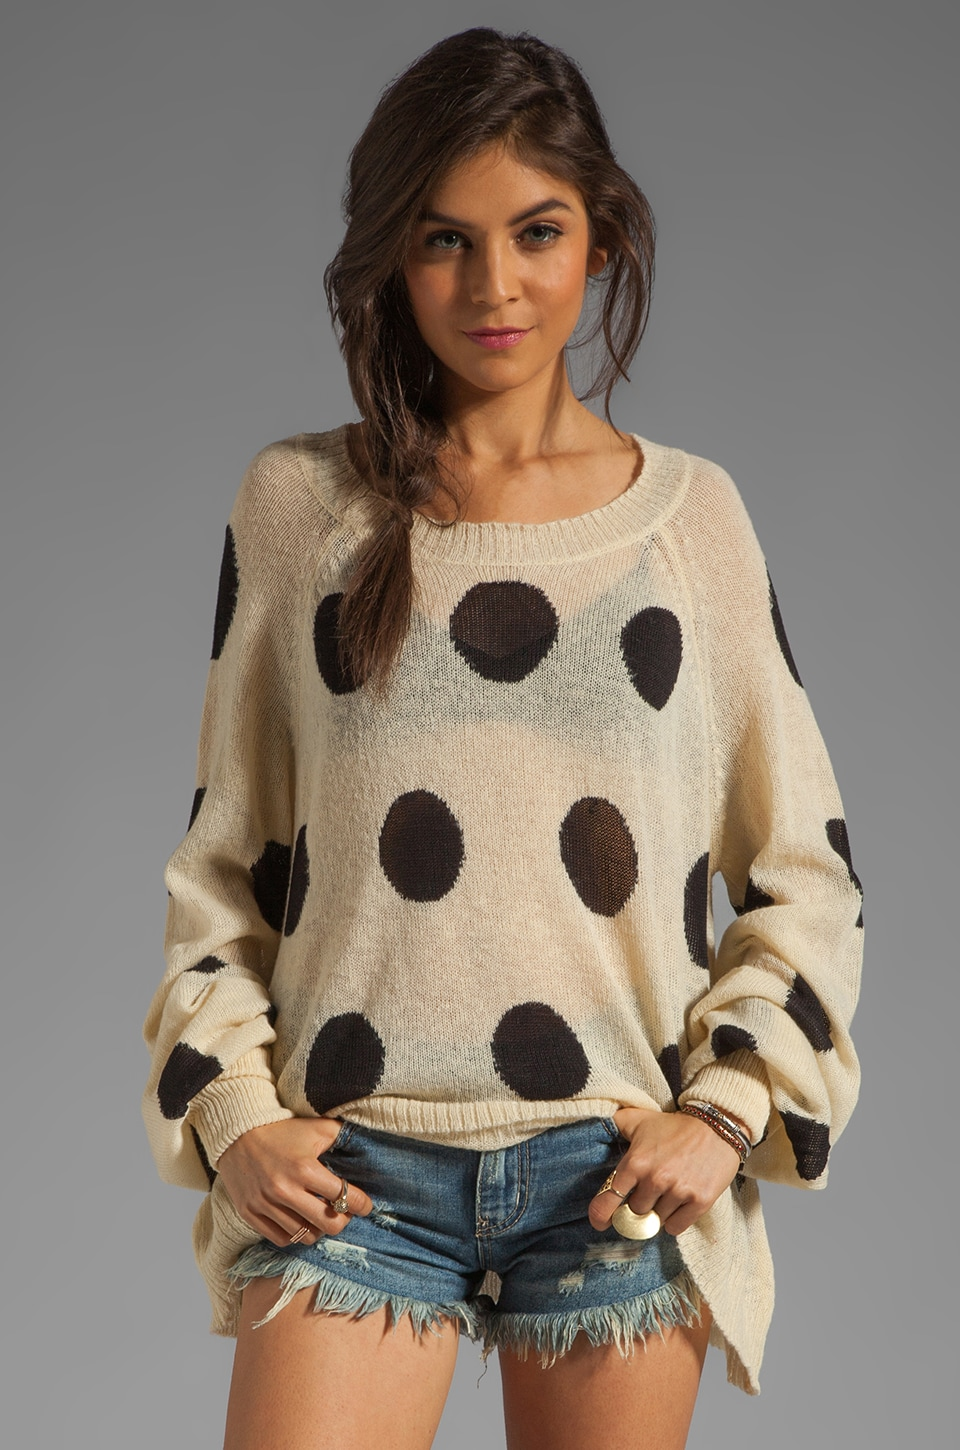 Wildfox Couture White Label Polka Dot It Pfeiffer Sweater in Naked